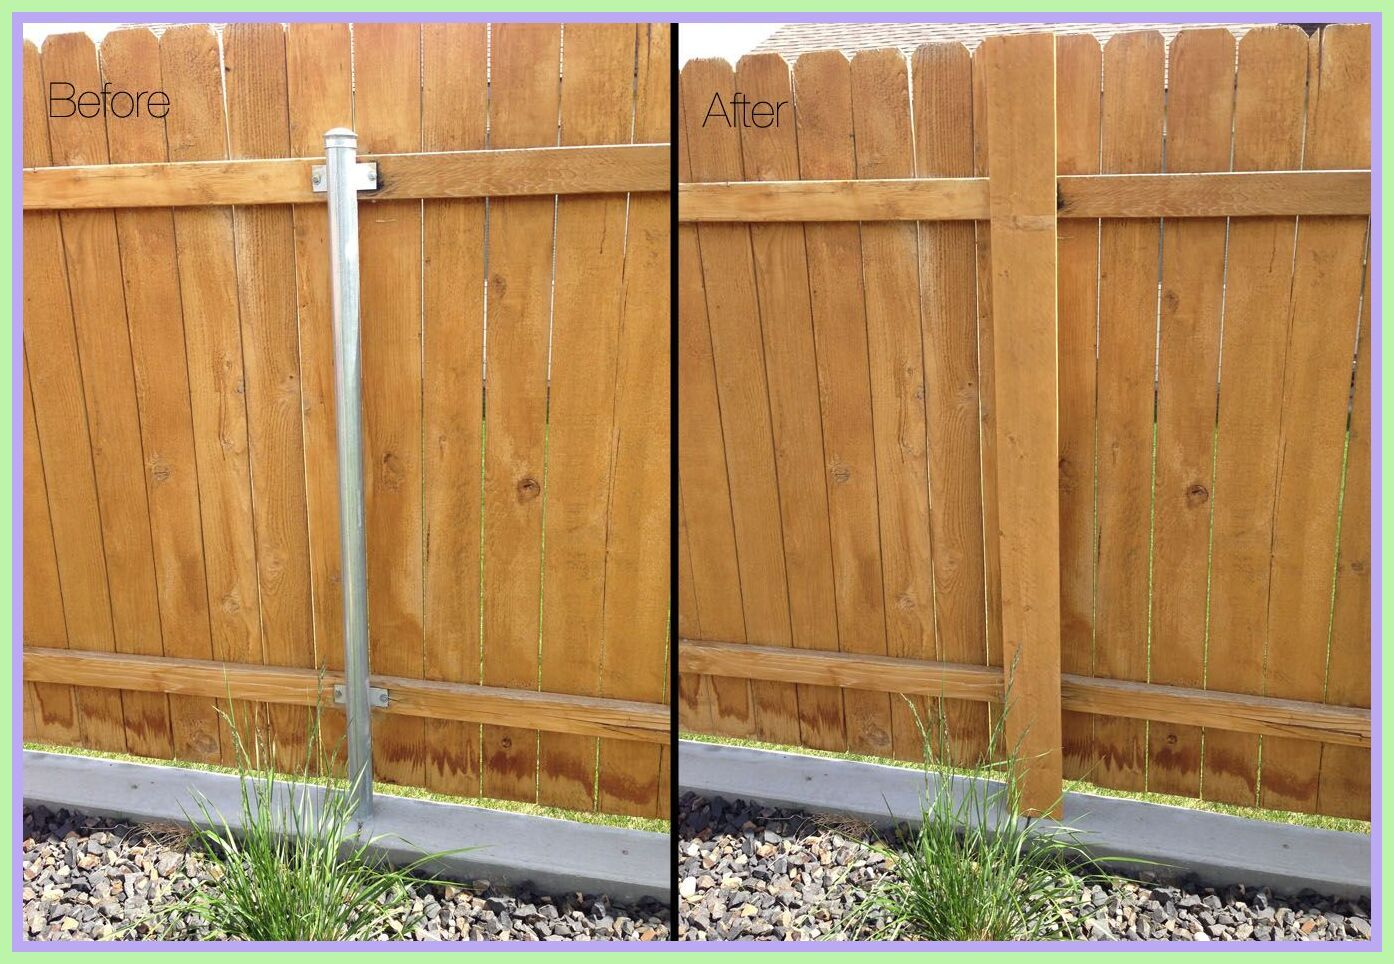 73 Reference Of Decorative Cedar Fence Posts In 2020 Metal Fence Posts Diy Fence Building A Fence